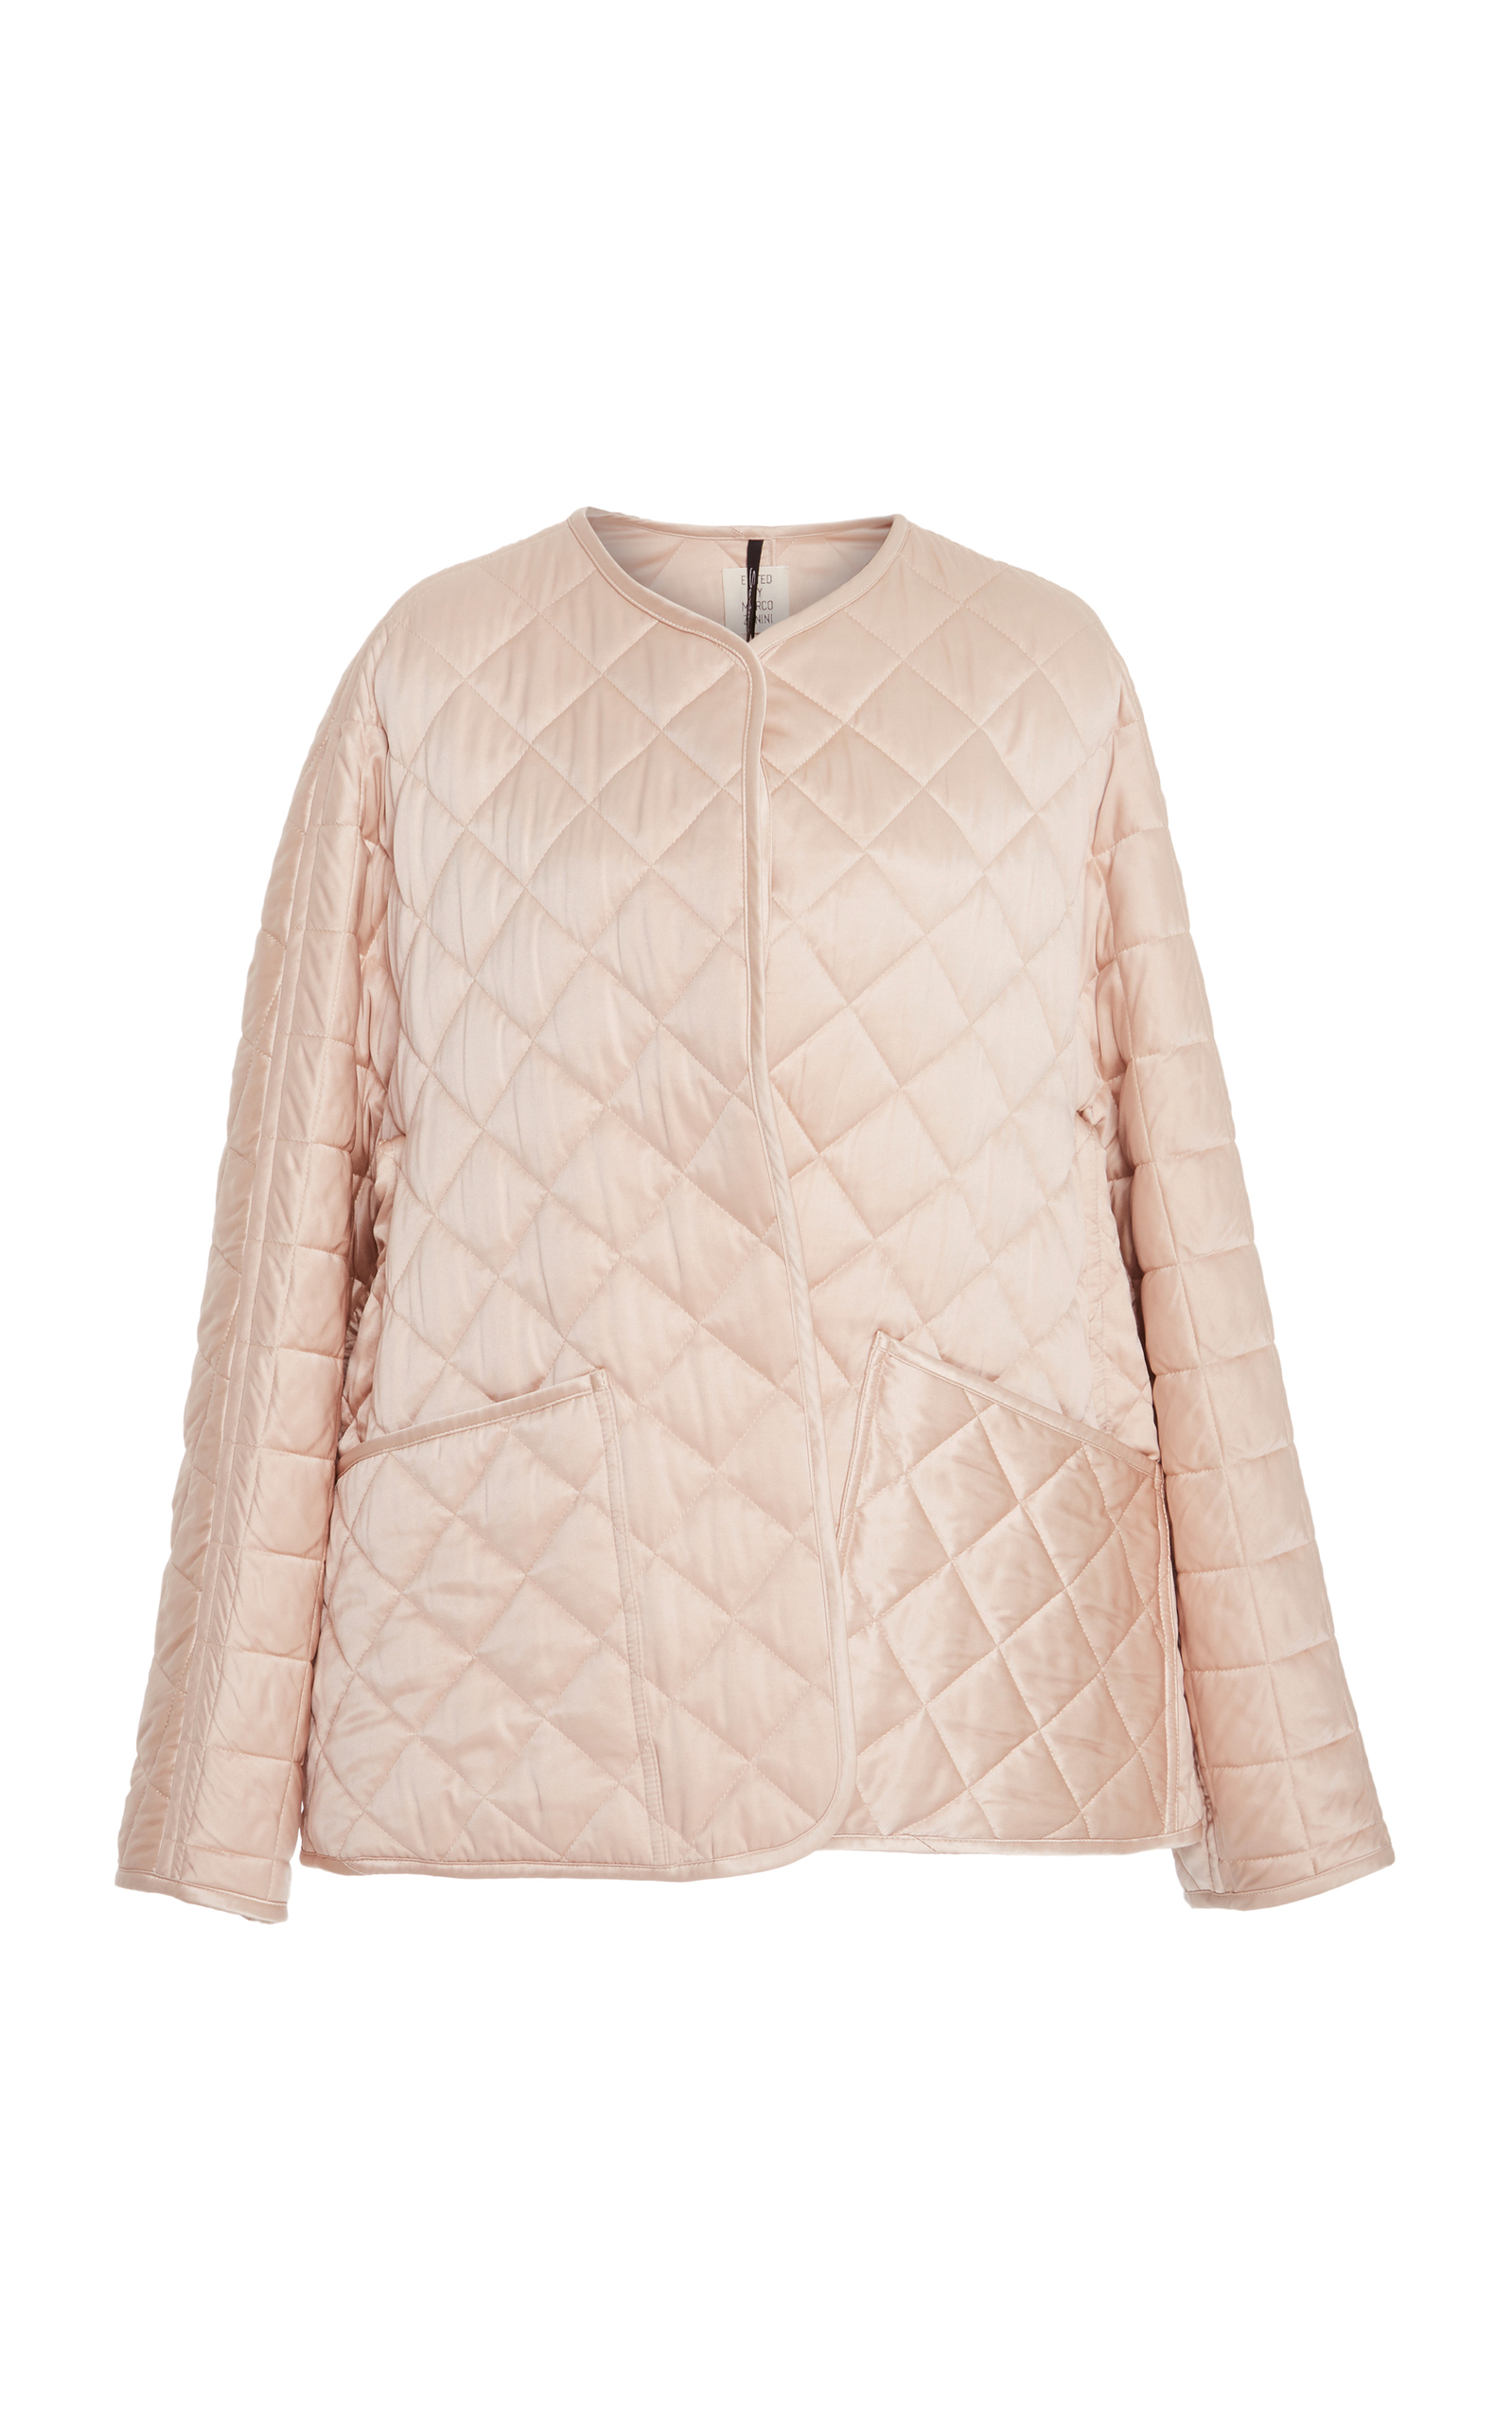 SANTONI EDITED BY MARCO ZANINI Silk And Down Quilted Jacket in Pink